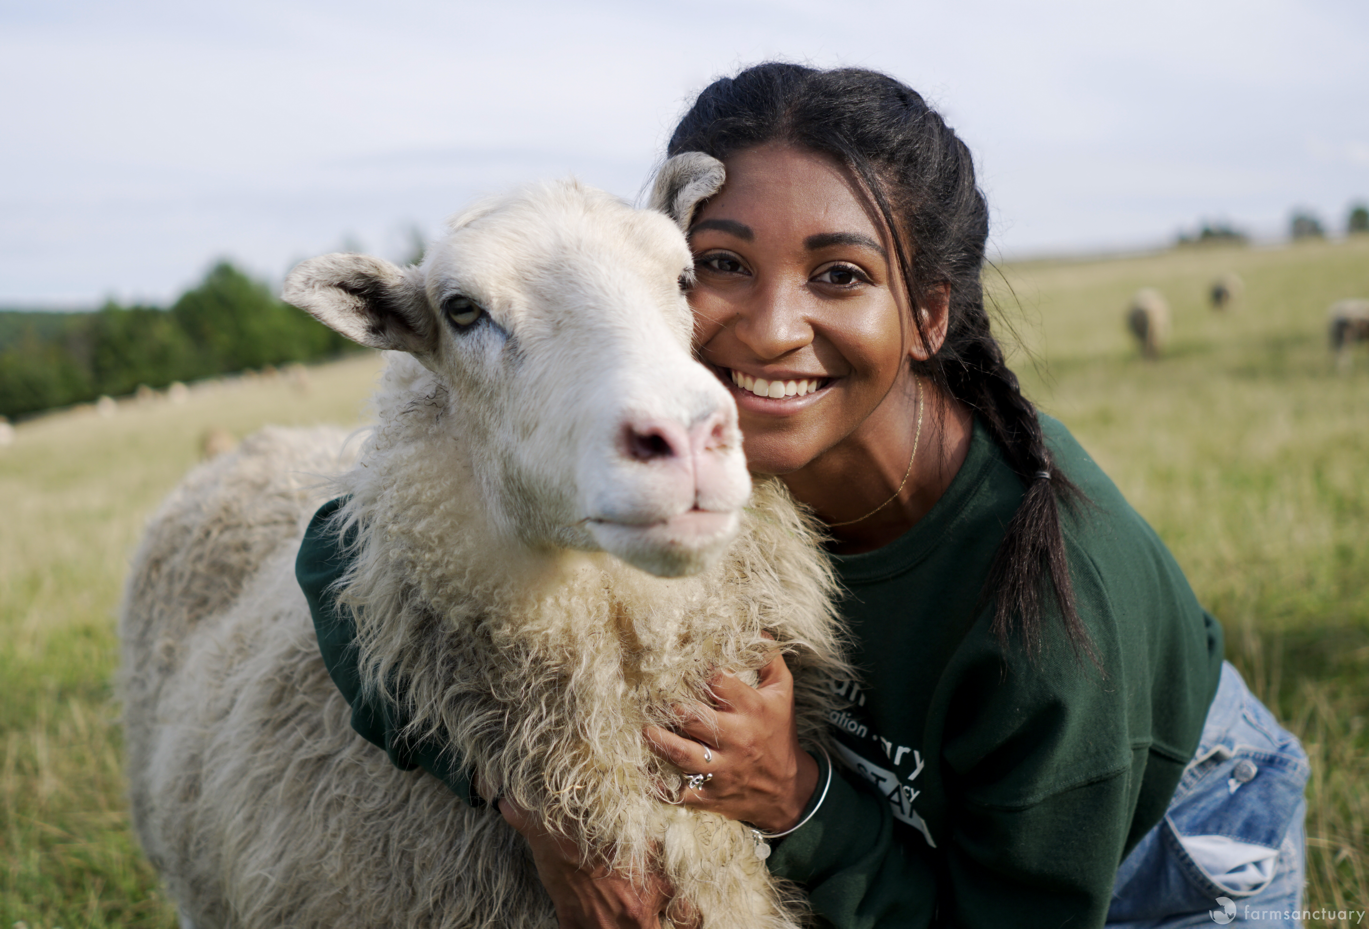 Farm Sanctuary Staff Arianna Duncan with a Sheep